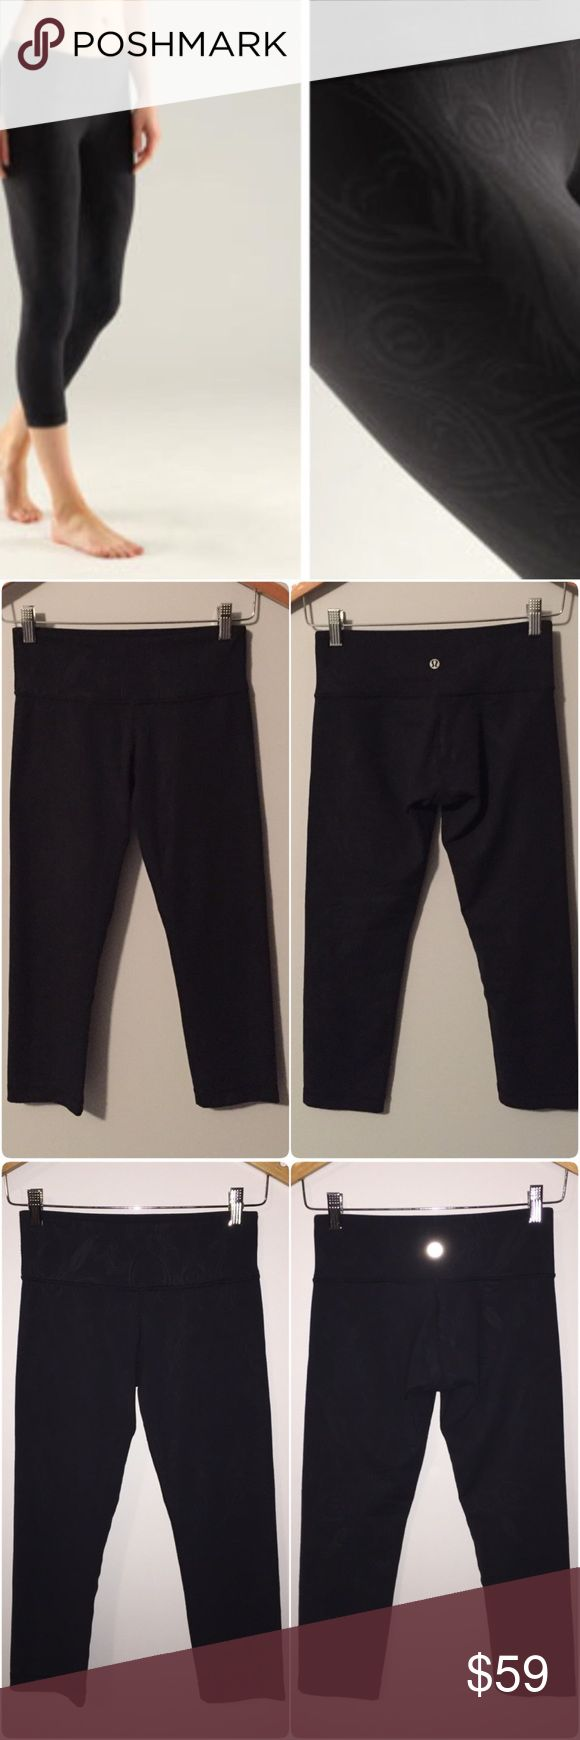 Lululemon wunder under crops Lululemon wunder under crops, size 4, black with peacock print, very unique, gently worn and in great condition with no flaws(meaning no piling, seam damages, rips, stains, holes, etc). Luon fabric is moisture wicking with four way stretch, added Lycra fibre ensures great shape retention, hidden key pocket in waistband, crop length, medium rise, tight fit. Third picture & top two pictures in the fourth image are with the camera flash on, to show you more detail…